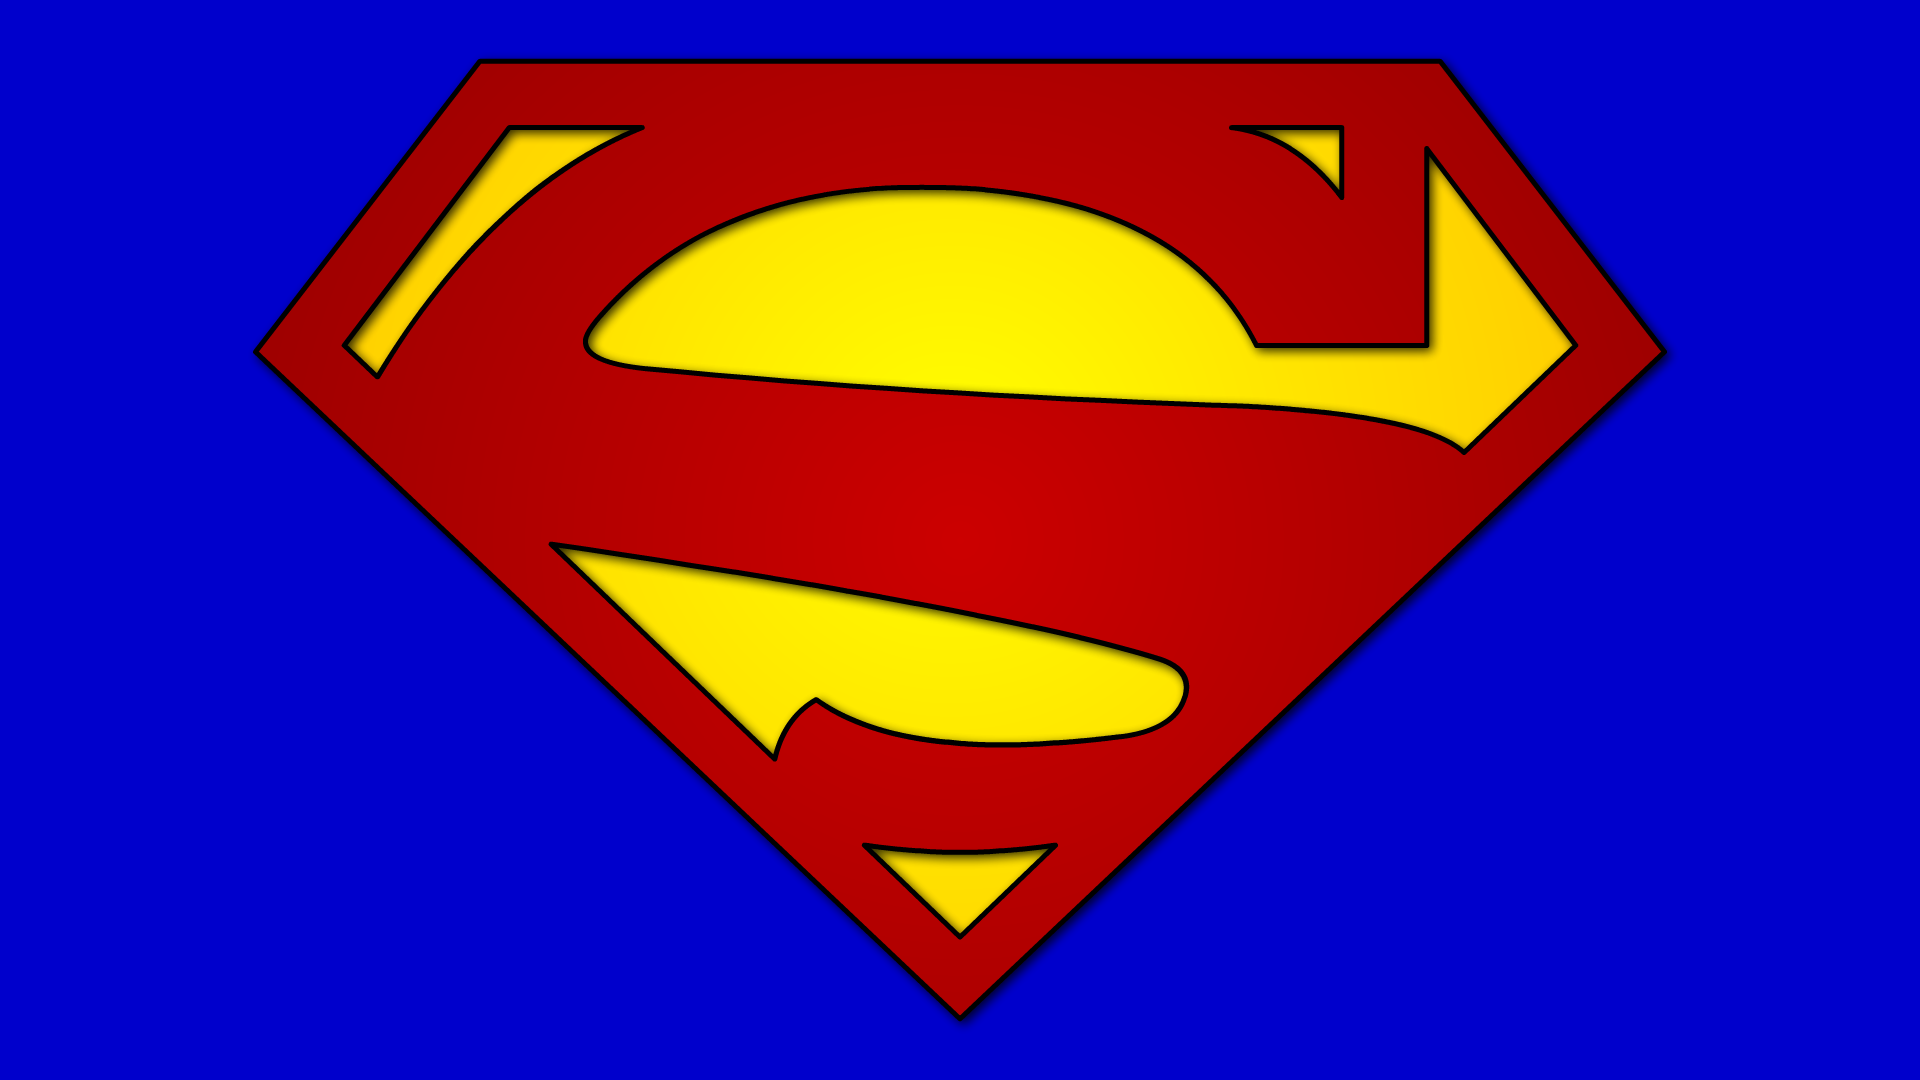 superman new 52 symbol by yurtigo on deviantart vector shield with dapi vector shield shapes